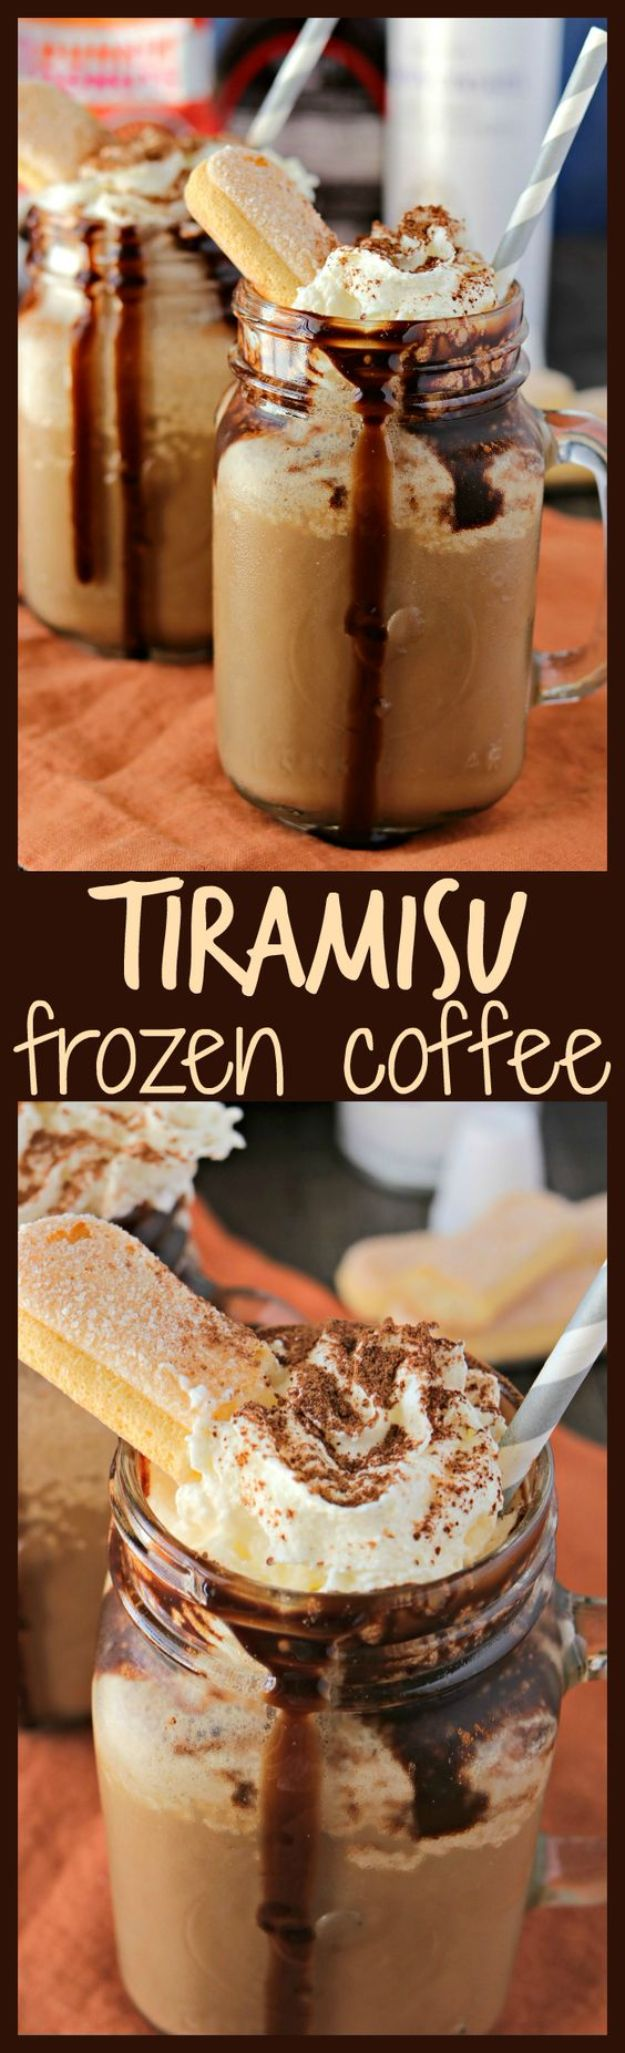 Coffee Drink Recipes - Tiramisu Frozen Coffee - Easy Drinks and Coffees To Make At Home - Frozen, Iced, Cold Brew and Hot Coffee Recipe Ideas - Sugar Free, Low Fat and Blended Drinks - Mocha, Frappucino, Caramel, Chocolate, Latte and Americano - Flavored Coffee, Liqueur and After Dinner Drinks With Alcohol, Dessert Ideas for Parties #coffeedrinks #coffeerecipes #coffee #drinkrecipes